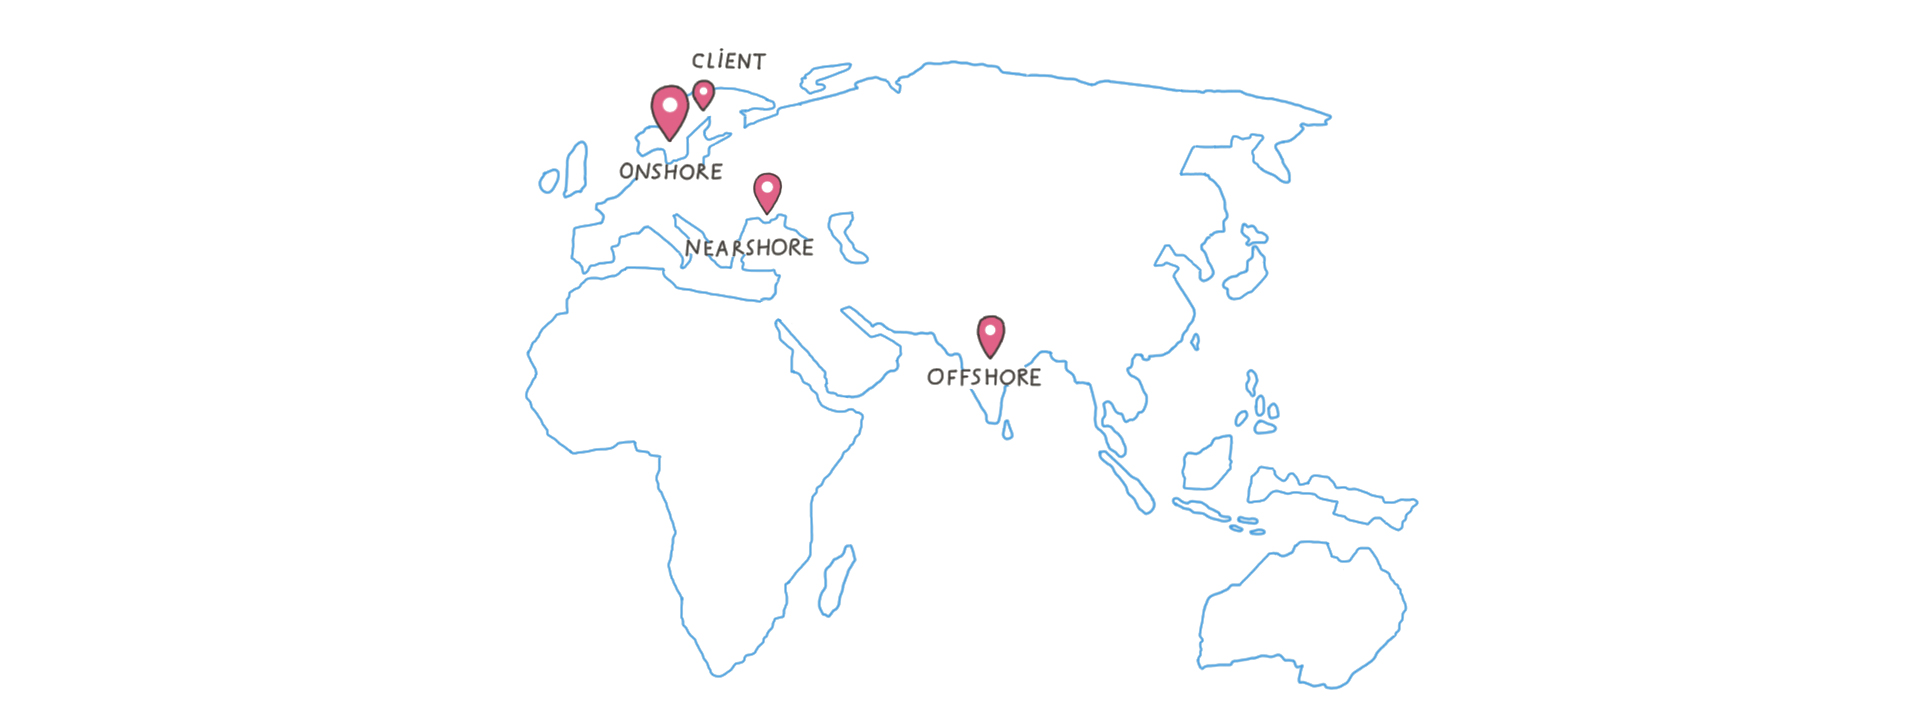 Offshoring, nearshoring, onshoring - options for outsourcing